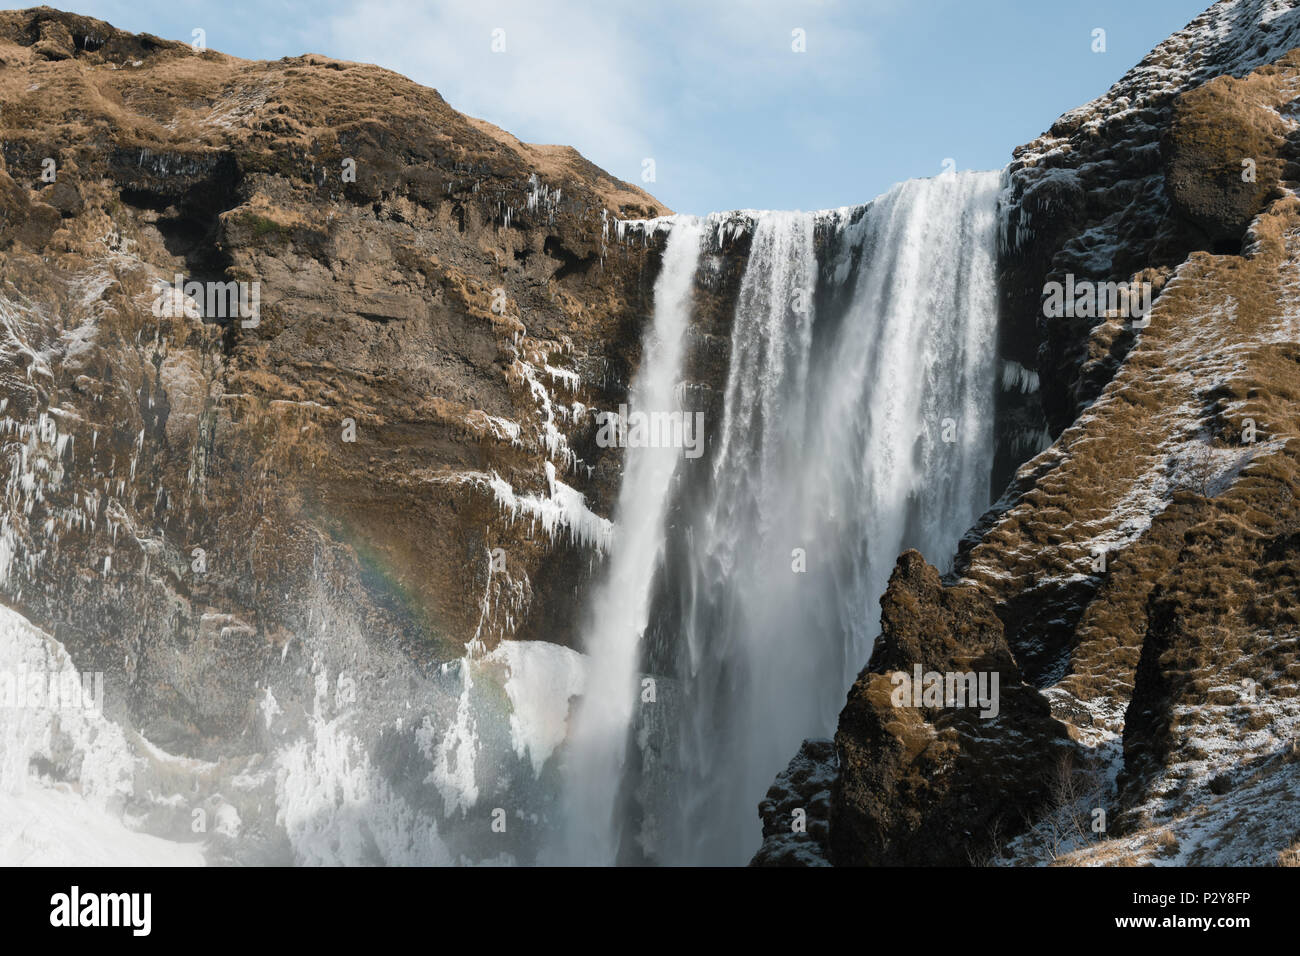 Skógafoss waterfall from below, on a sunny day with a rainbow in the mist. Landscape orientation. - Stock Image